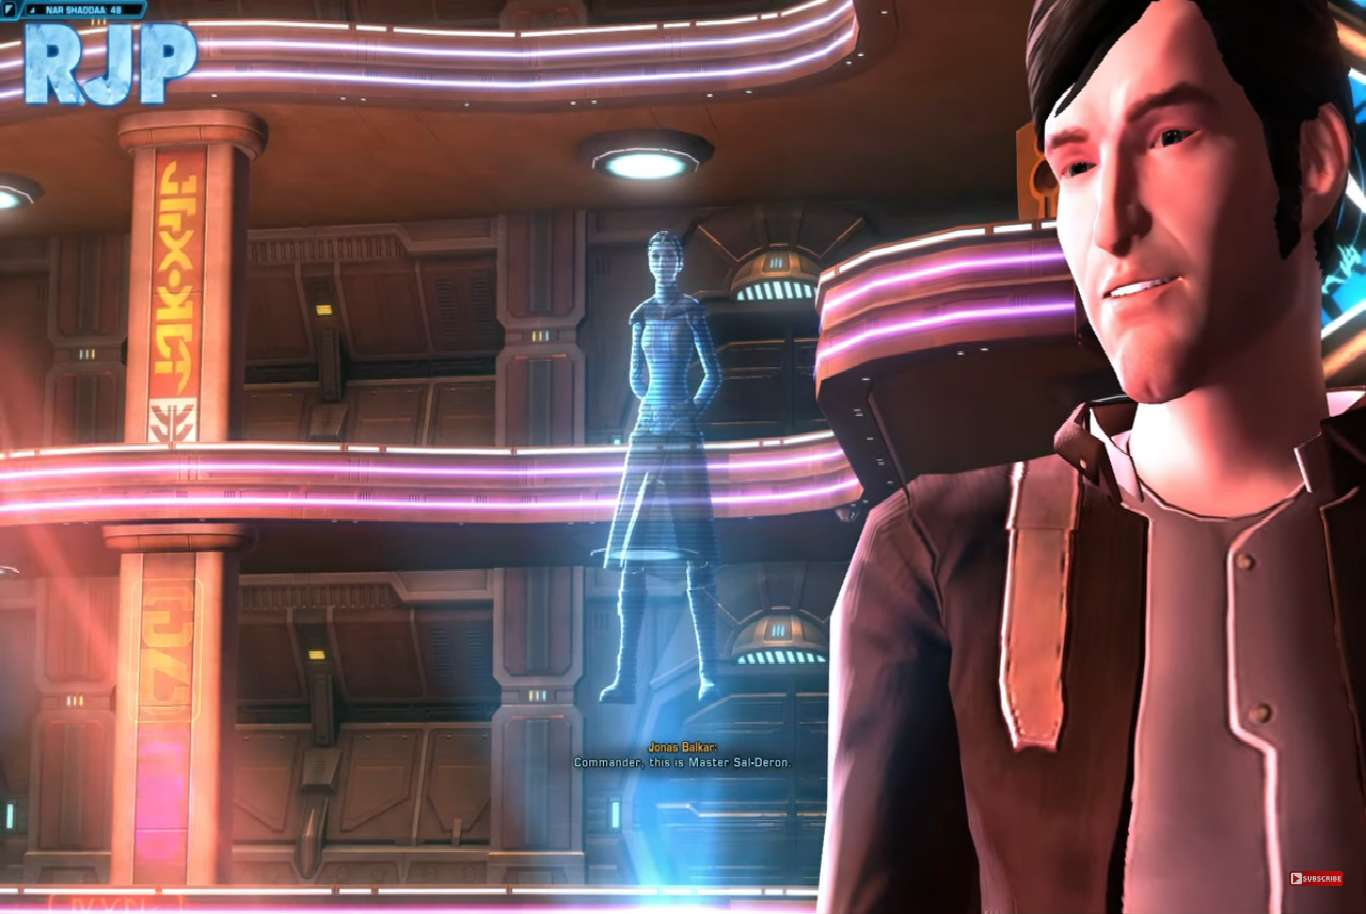 Star Wars The Old Republic Introducing More Choices Into The Game With Loyalist/Sabotage System